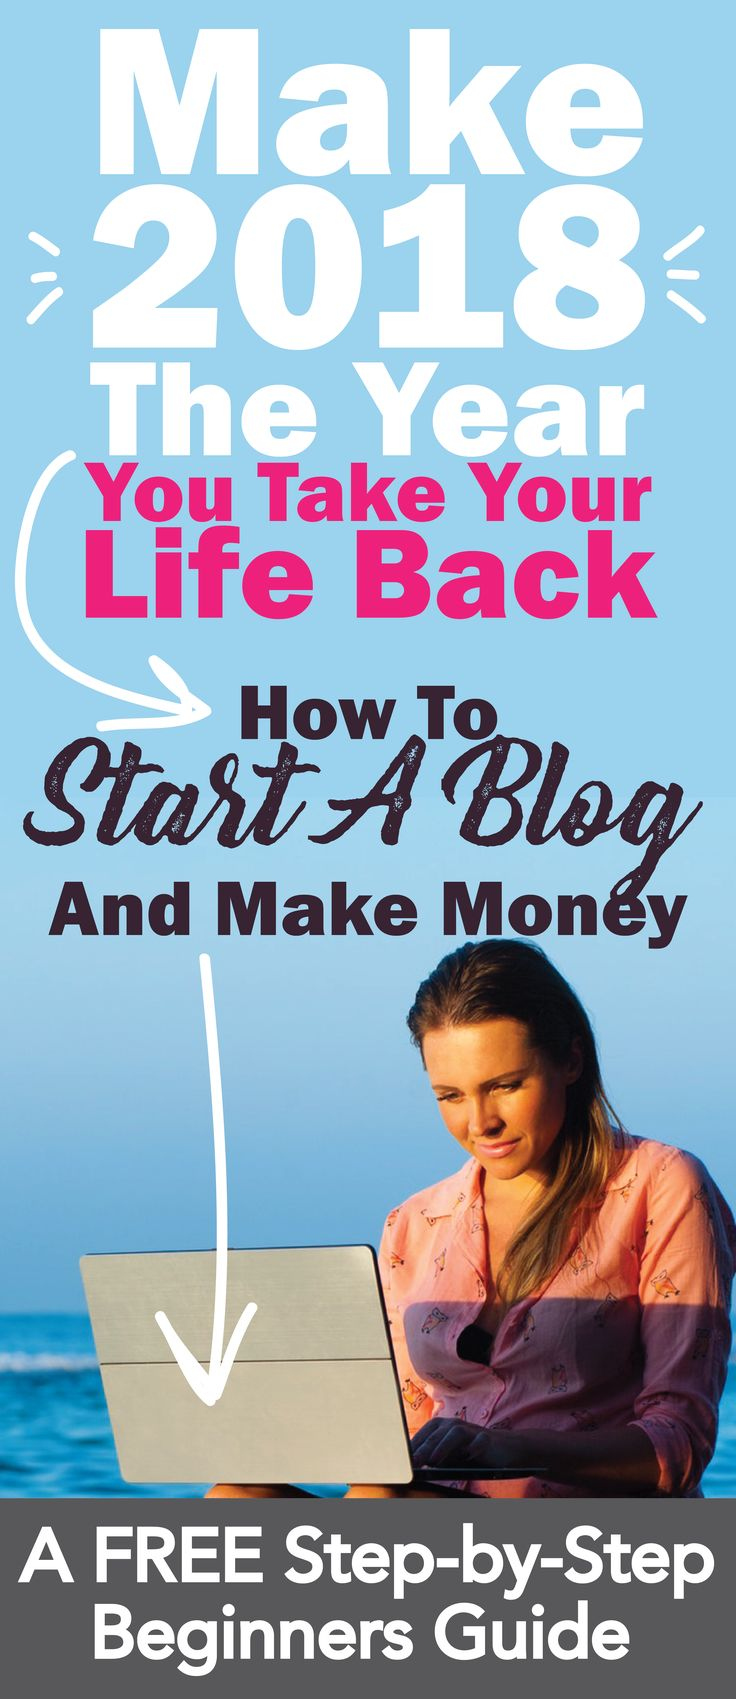 how to start a blog and make money free tutorial | Wordpress for beginners | Mommy Blog | lifestyle blog | Start a blogging business | Pinterest blog traffic | Make money online |